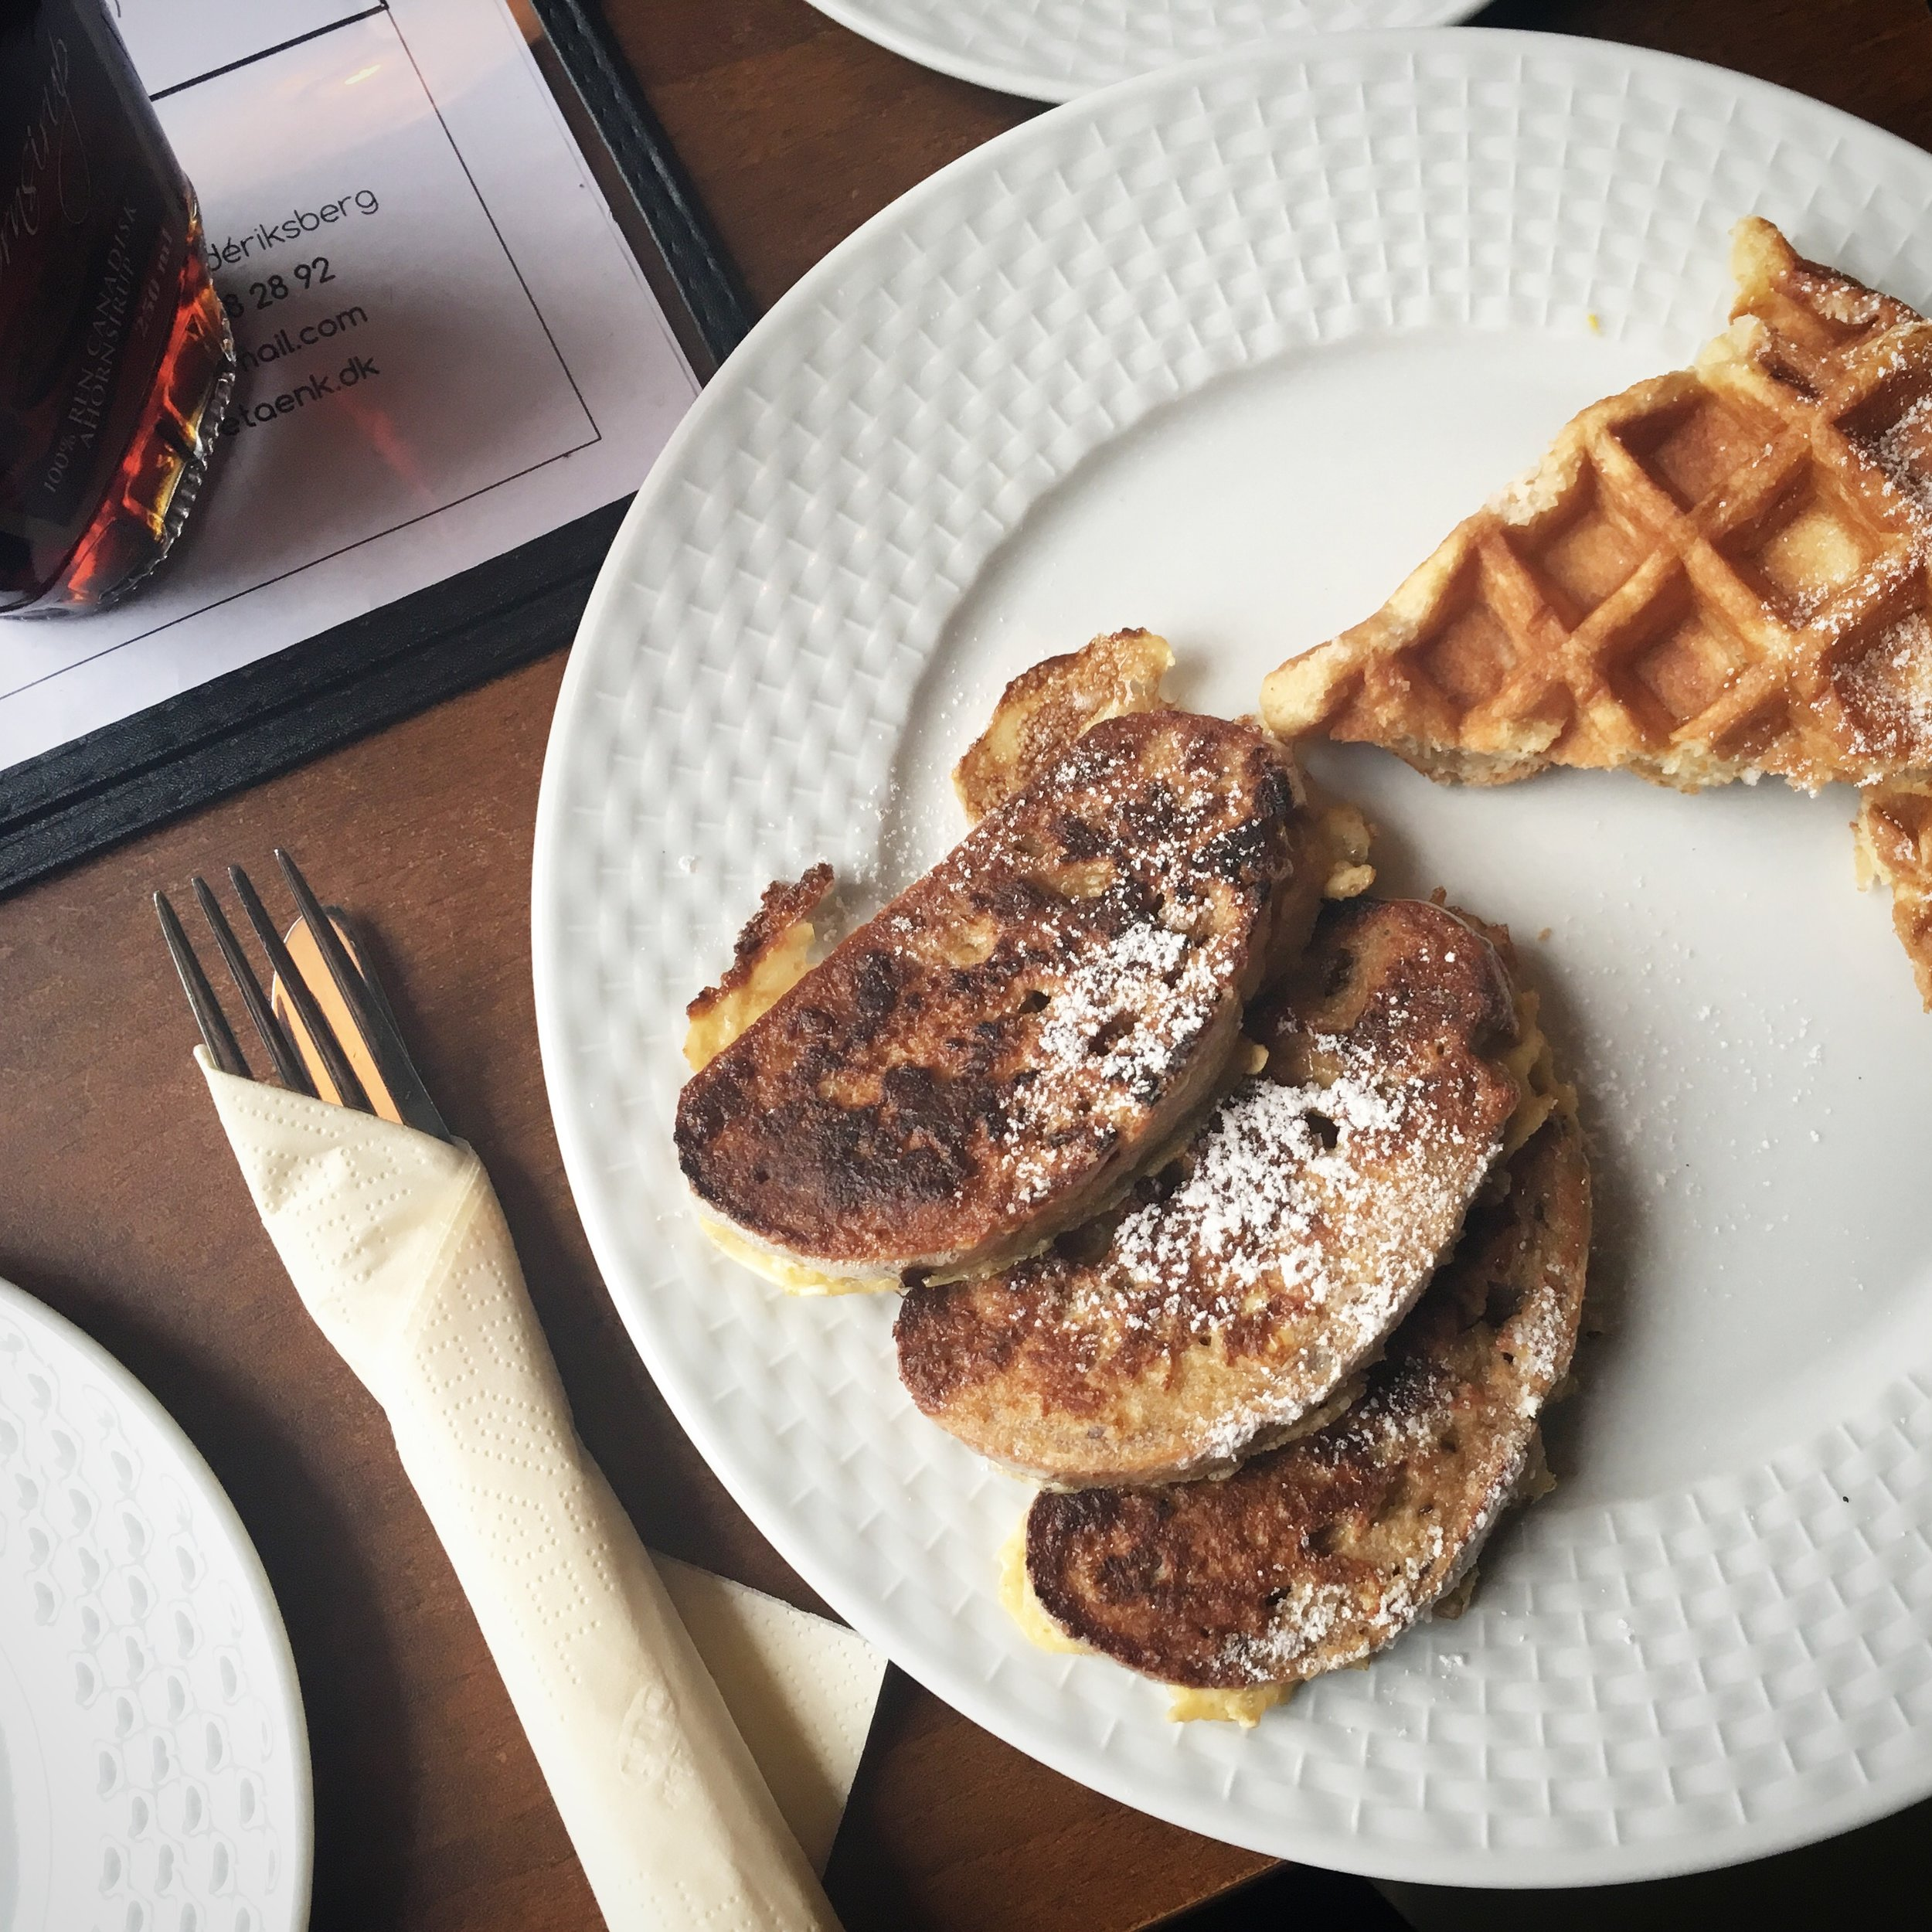 French toast and waffles at Cafe Taenk in Copenhagen